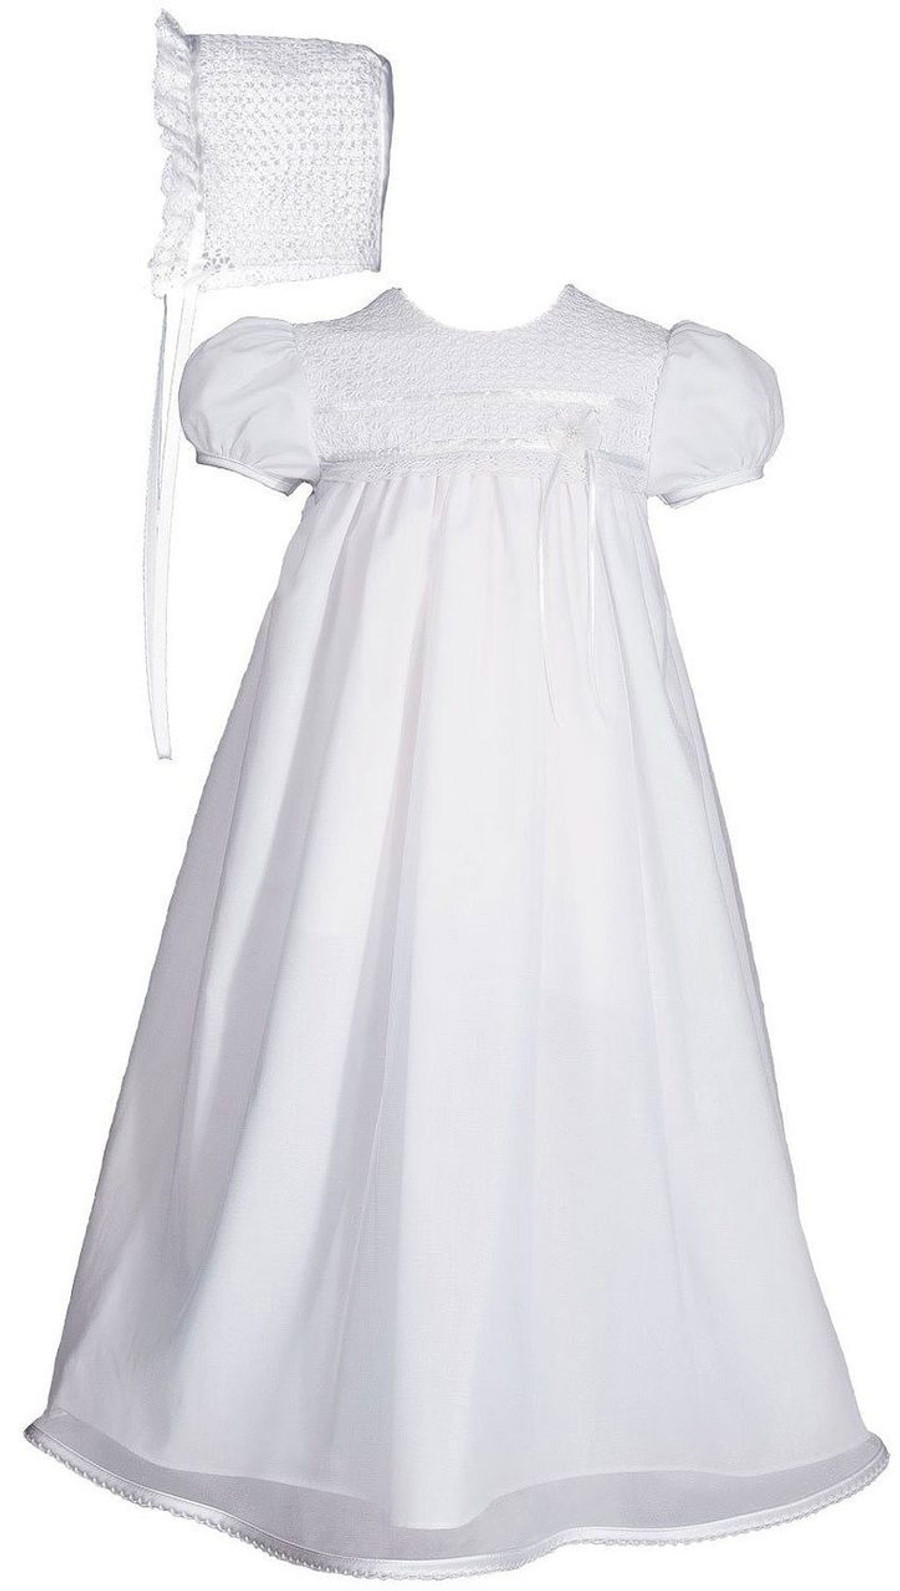 "Tricot Overlay Christening Baptism Gown with Tatted Lace Bonnet, 25"" Length"